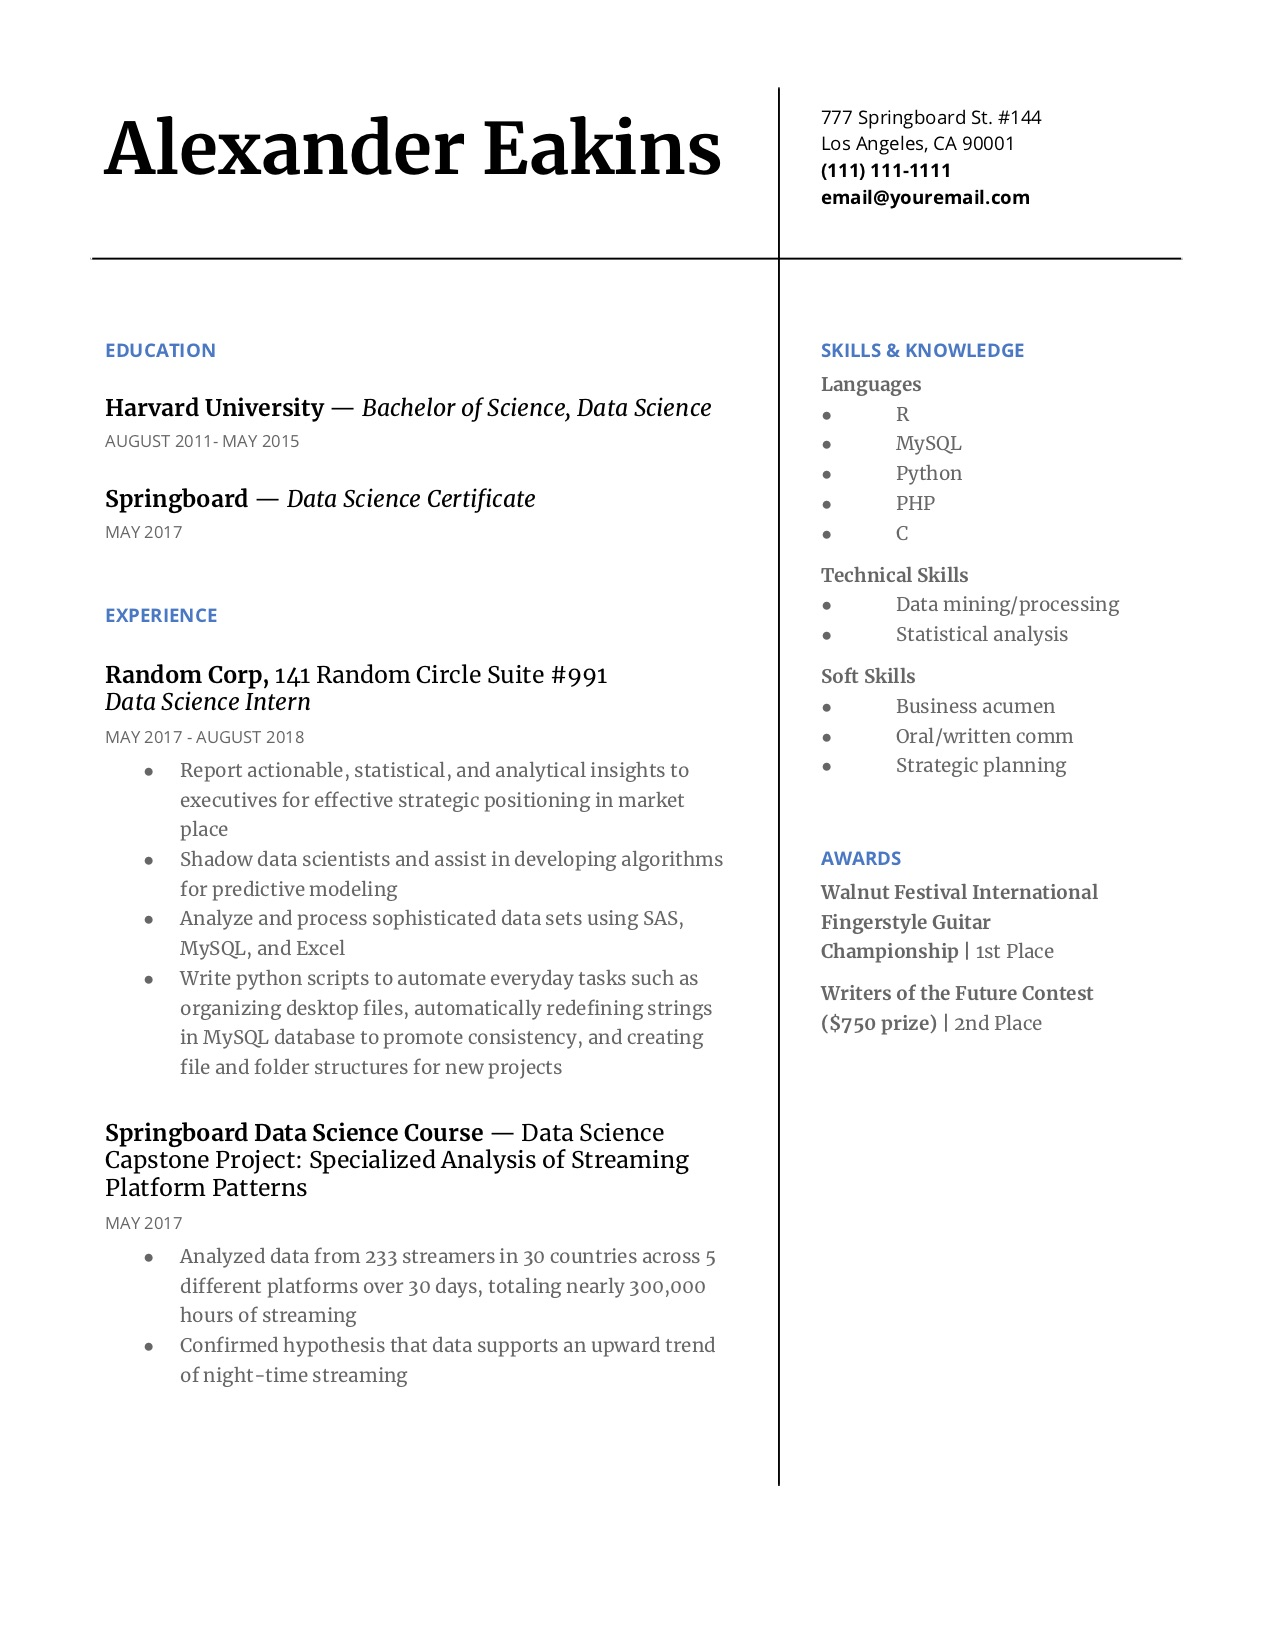 Resume Columns 7 Step Guide To Making Your Data Science Resume Stand Out